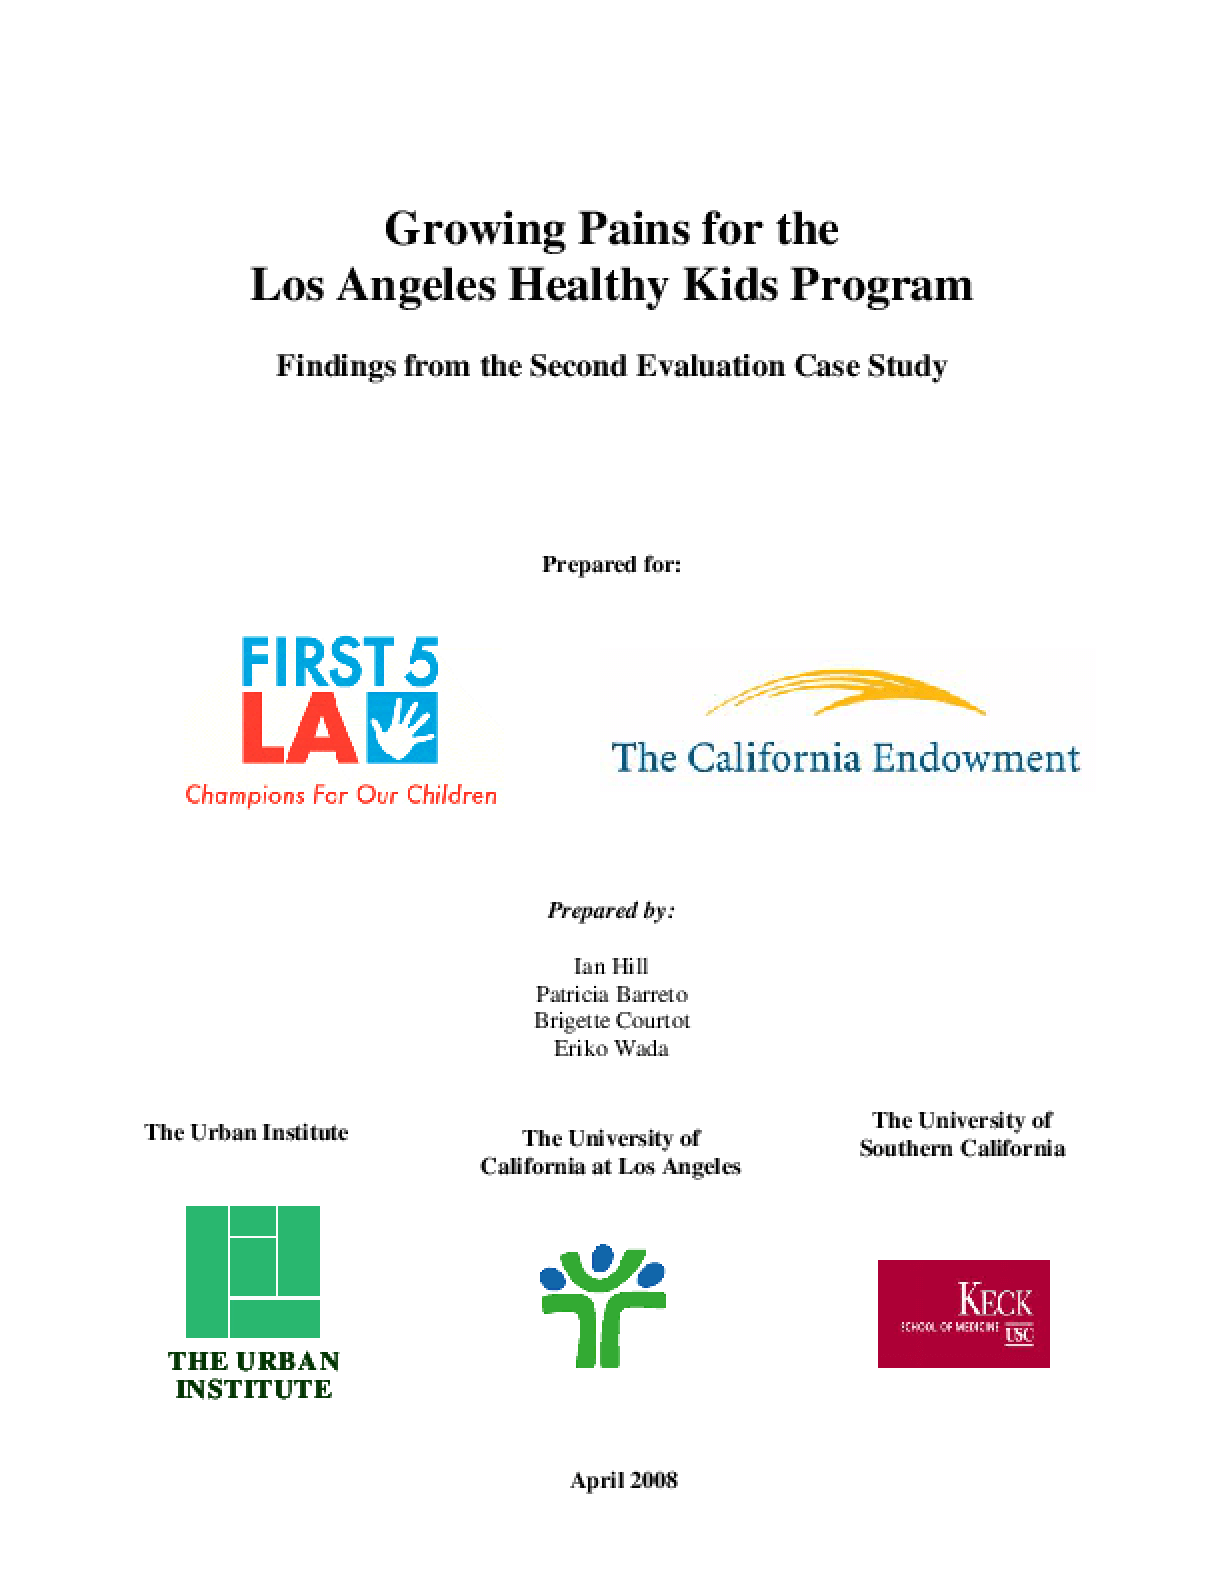 Growing Pains for the Los Angeles Healthy Kids Program: Findings From the Second Evaluation Case Study (Apr 2008)